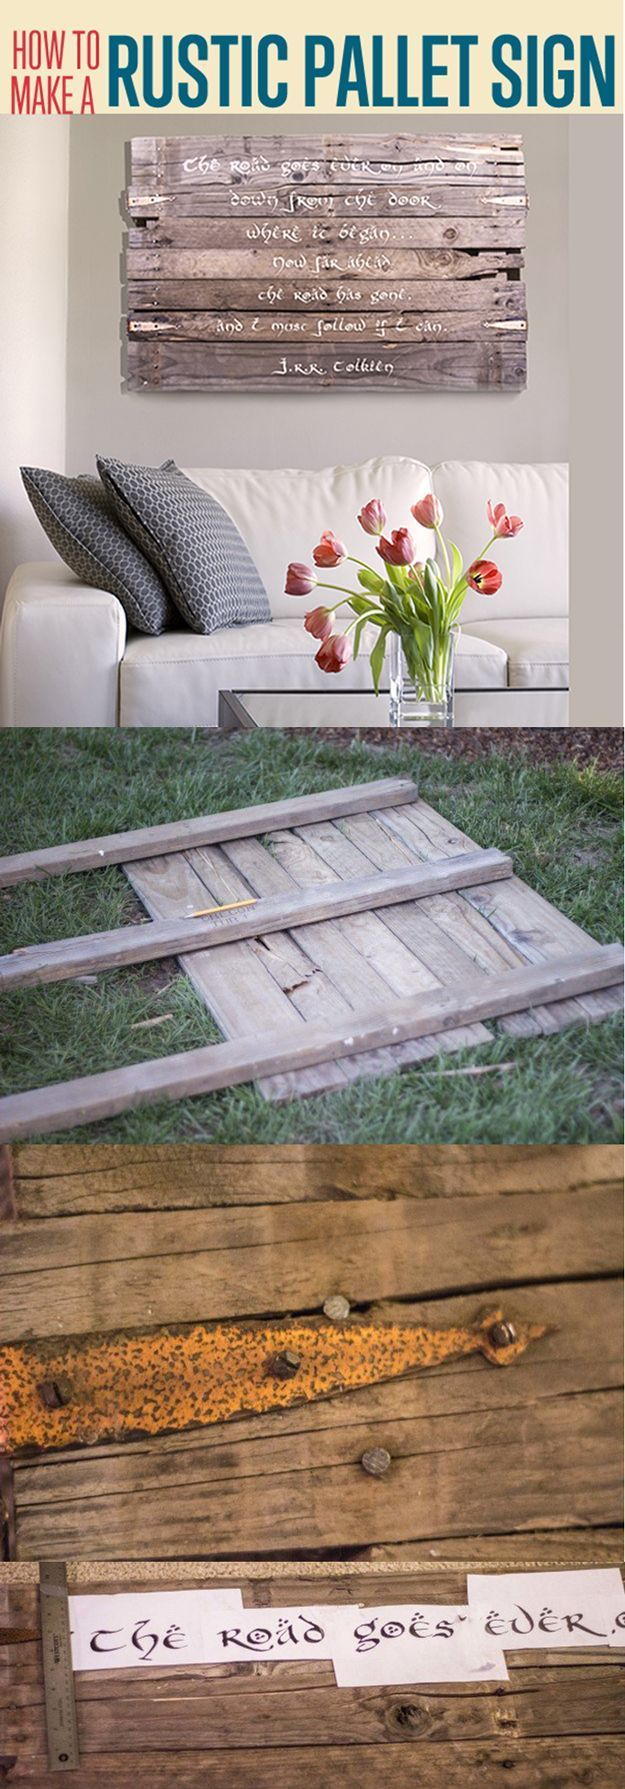 Outdoor pallet projects for diy furniture diy pallet projects outdoor pallet projects for diy furniture solutioingenieria Images